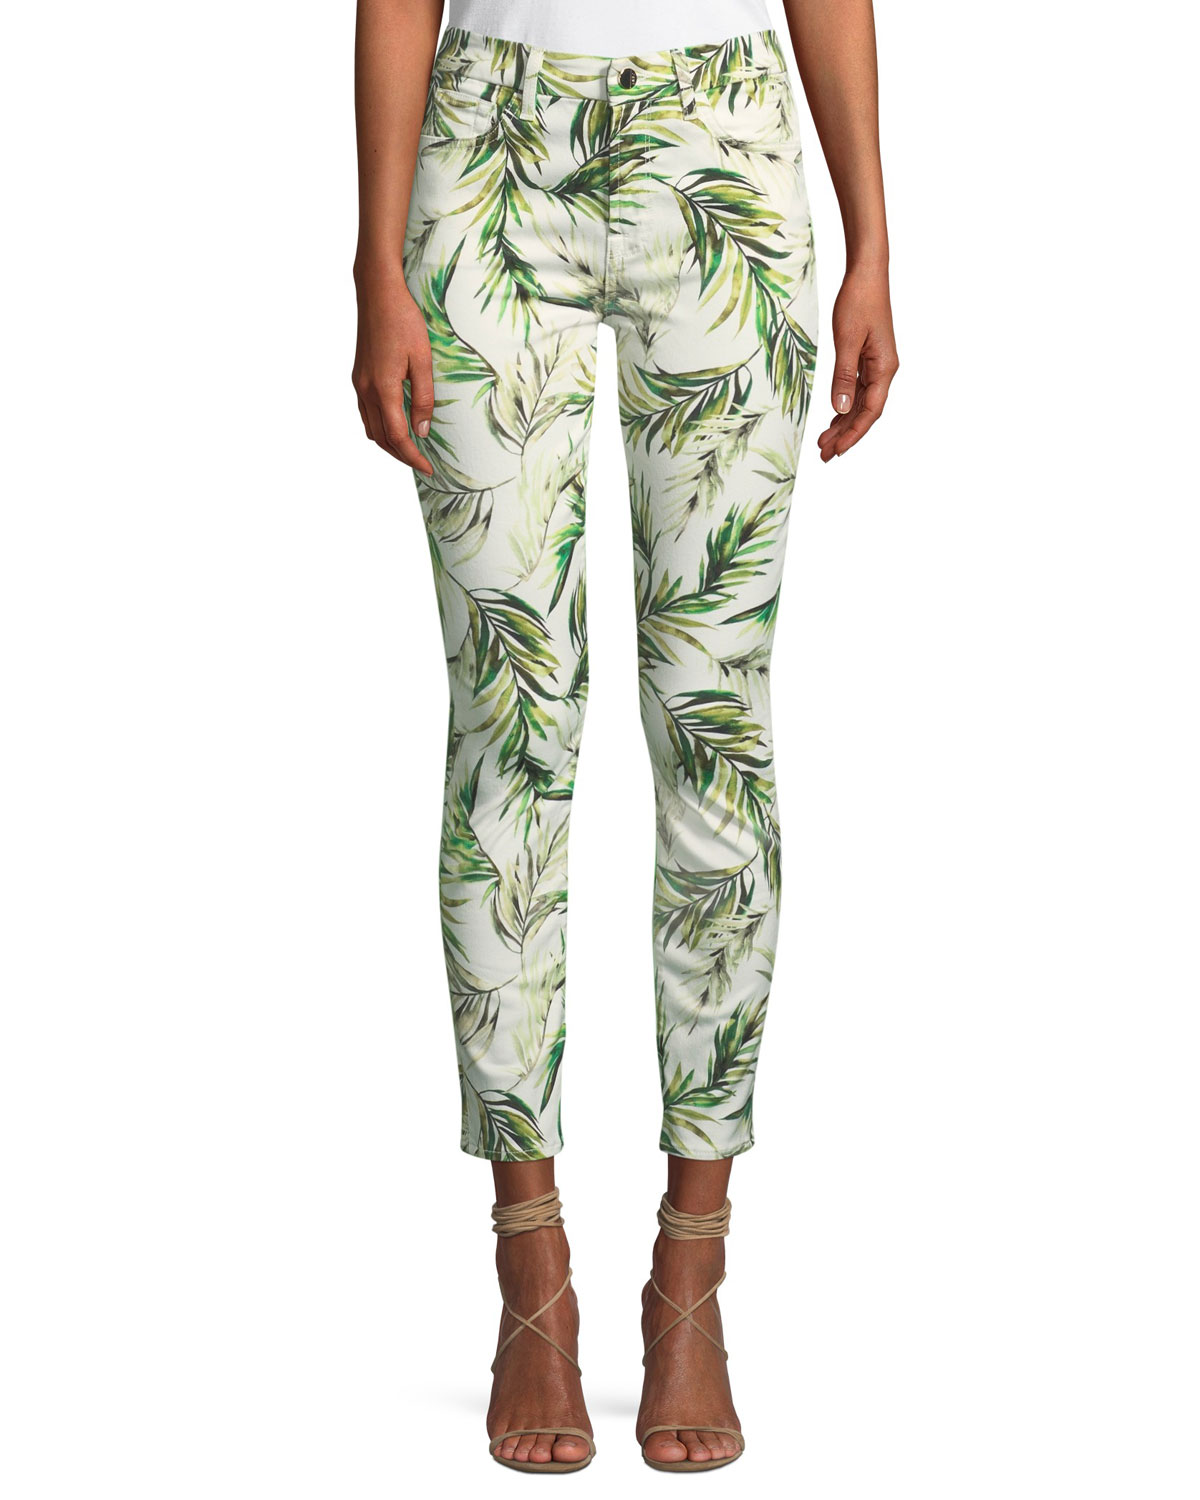 JEN7 BY 7 FOR ALL MANKIND ANKLE SKINNY PALM FRONDS JEANS